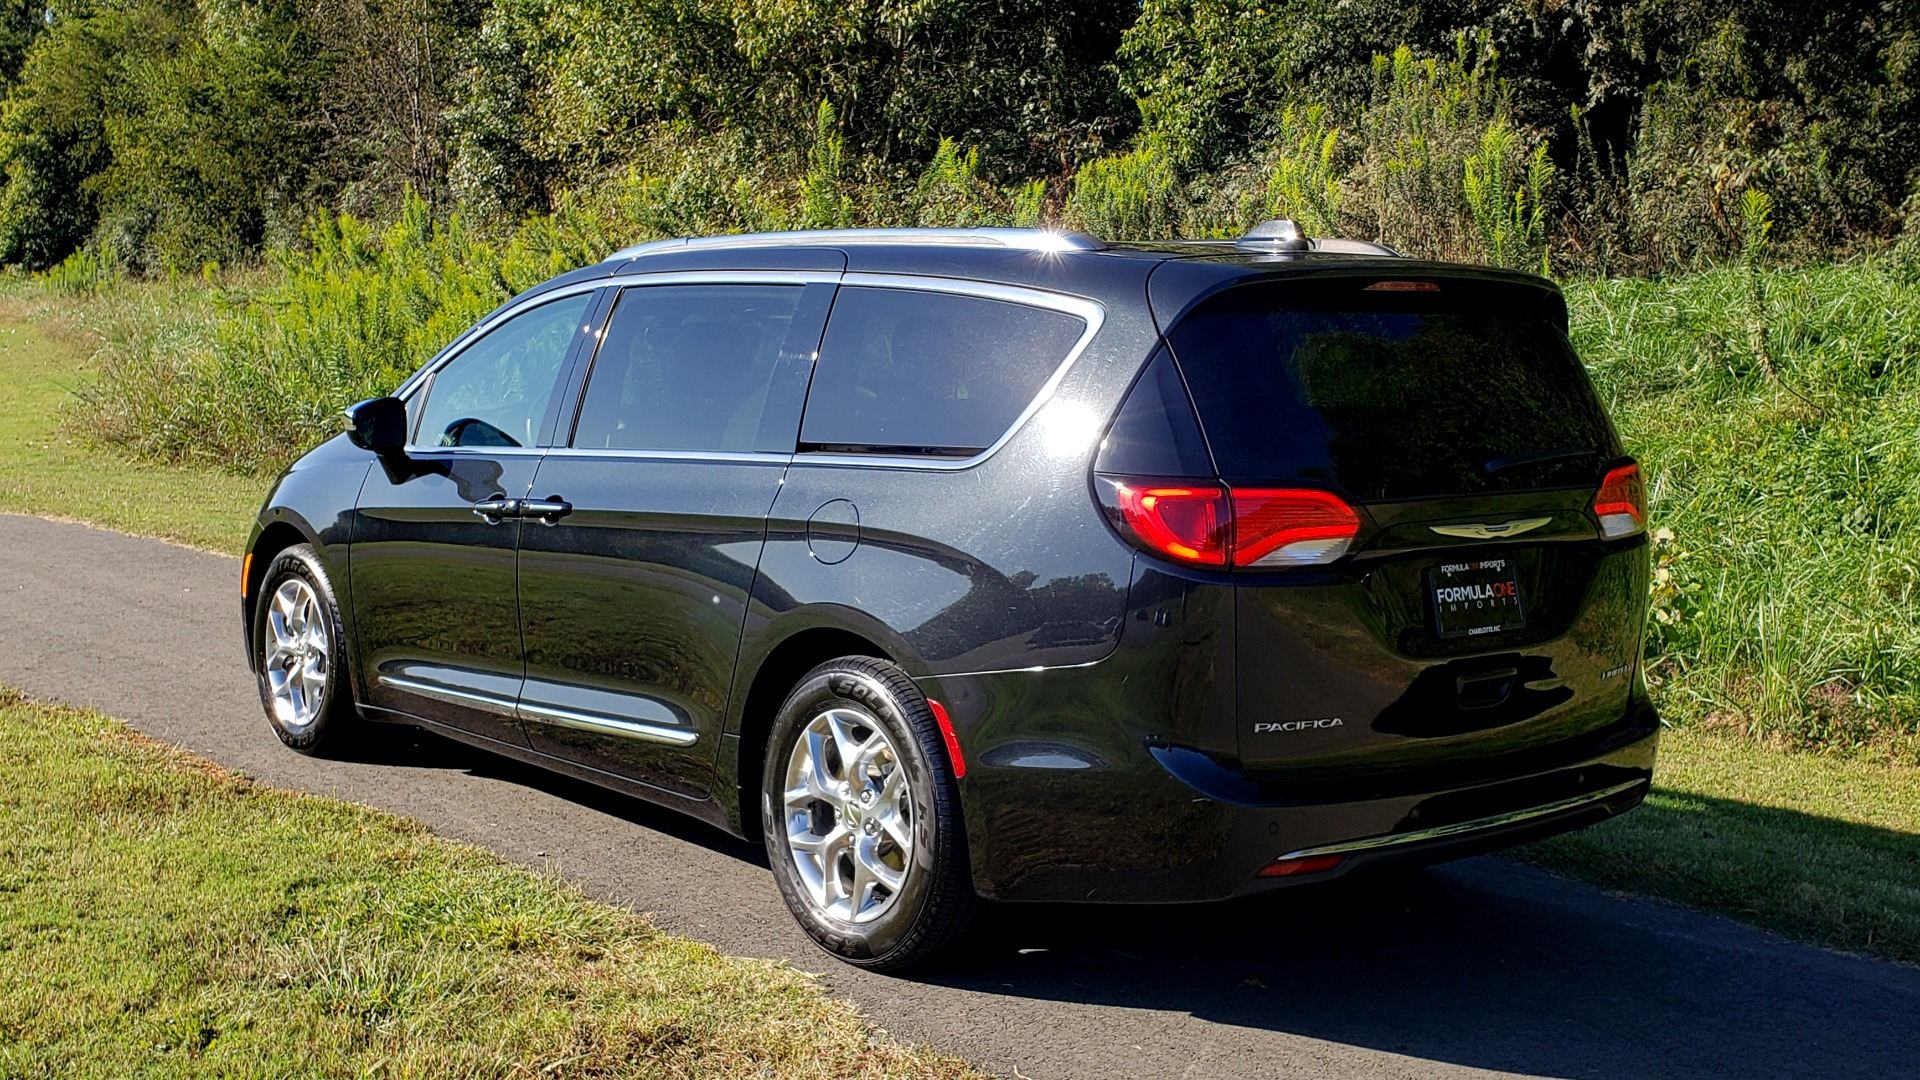 Used 2018 Chrysler PACIFICA LIMITED / 3.6L V6 / NAV / PANO-ROOF / 3-ROWS / REARVIEW for sale Sold at Formula Imports in Charlotte NC 28227 8